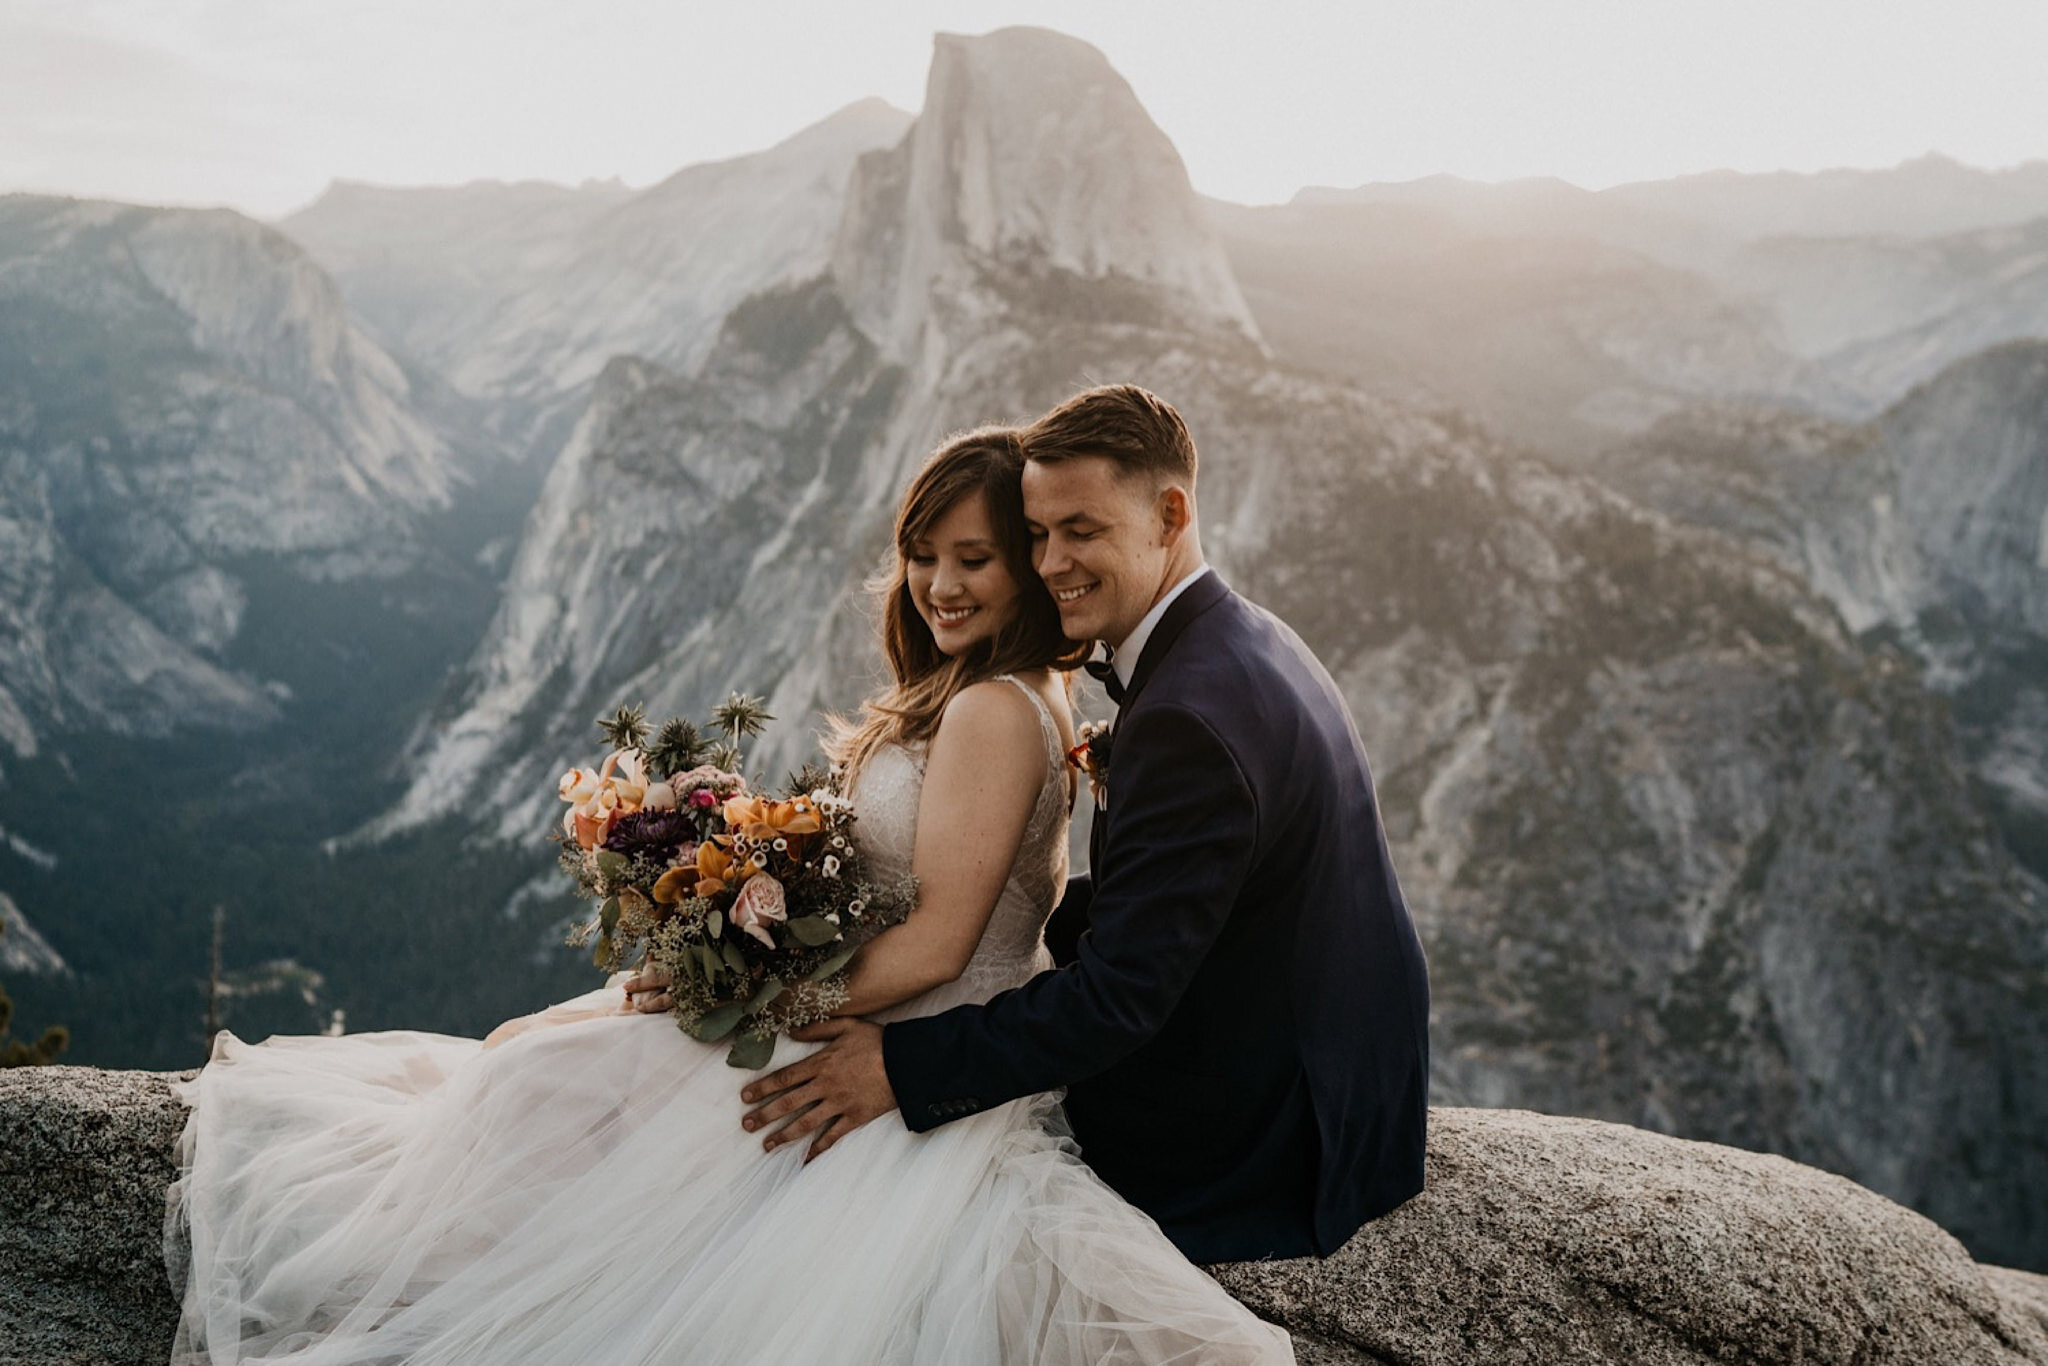 Glacier Point Elopement at Yosemite National Park | Boho blush bouquet by rain and pines